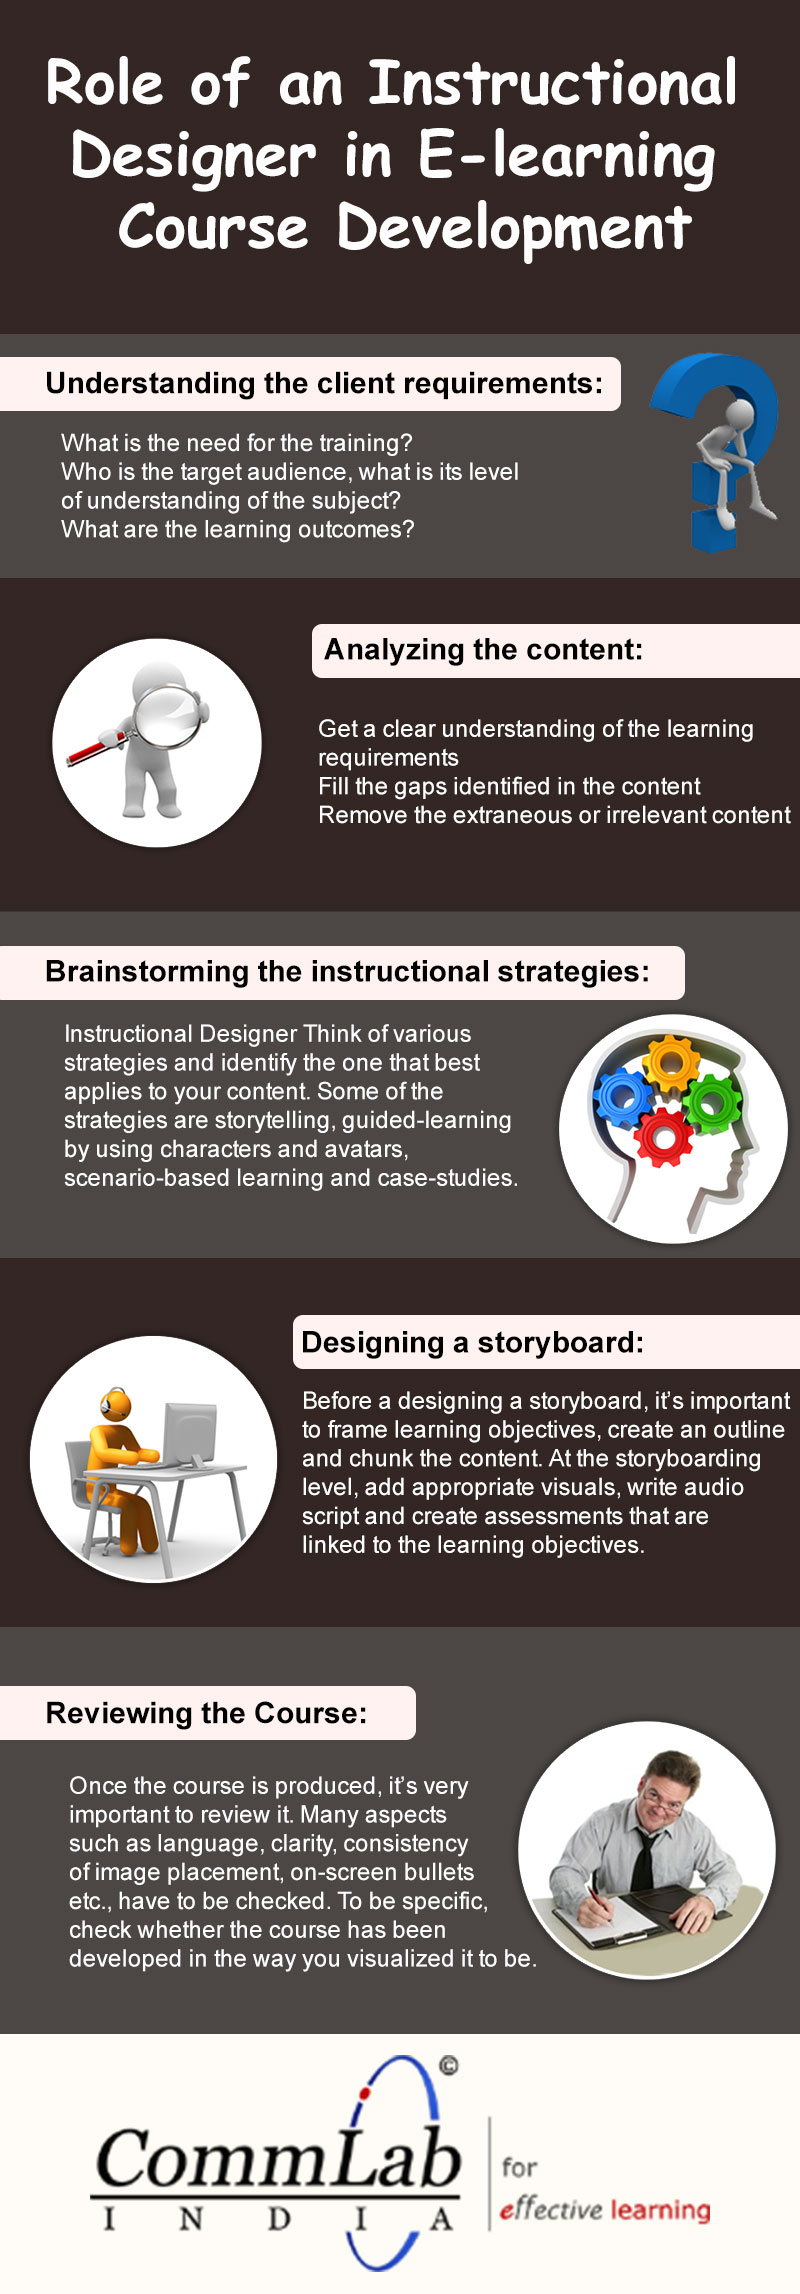 Role of an Instructional Designer in E-learning Course Development – An Infographic